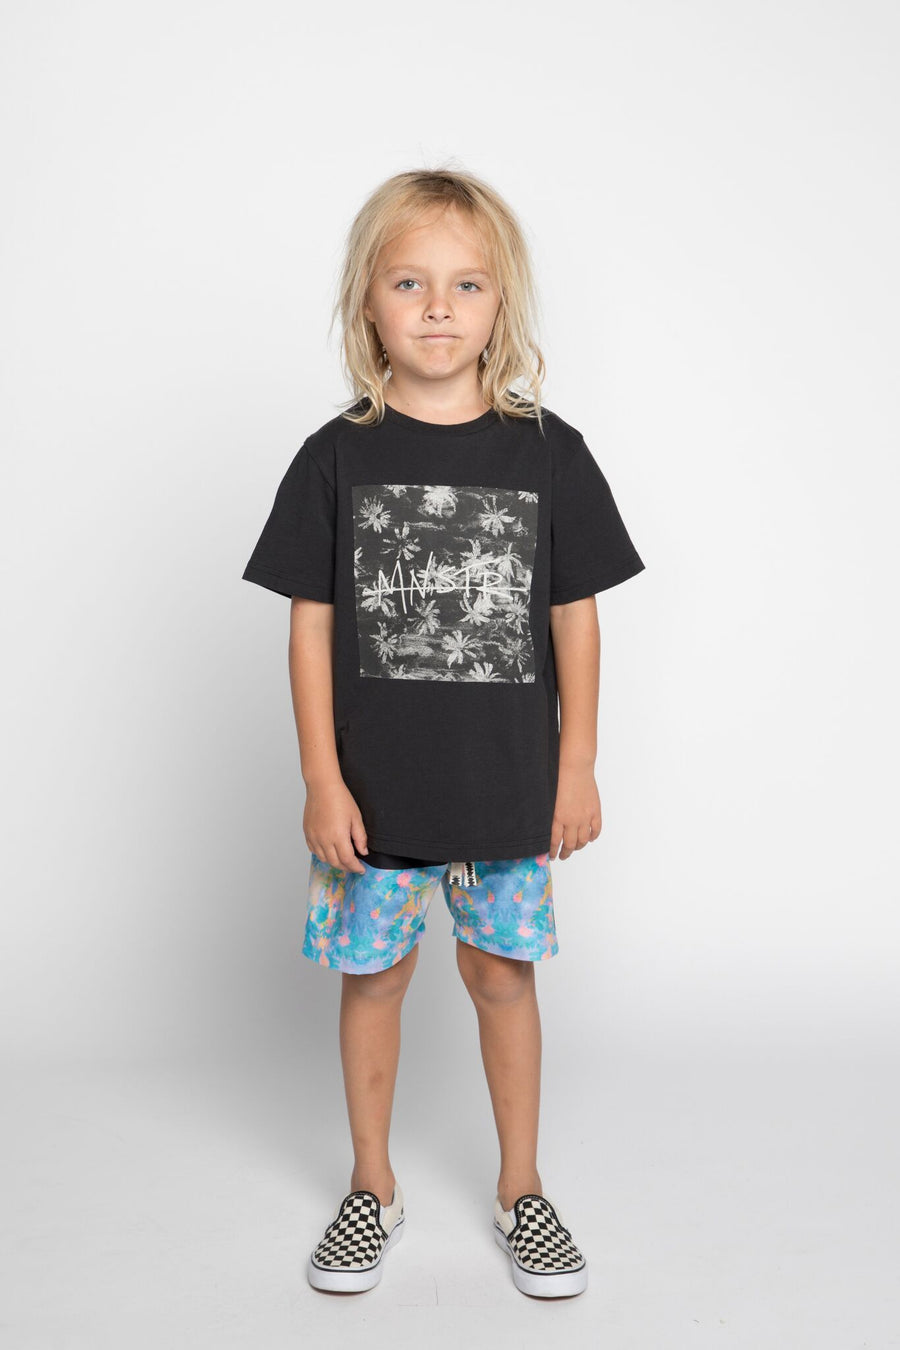 Munster Kids Toucs Tee - Black - Tiny People Cool Kids Clothes Byron Bay